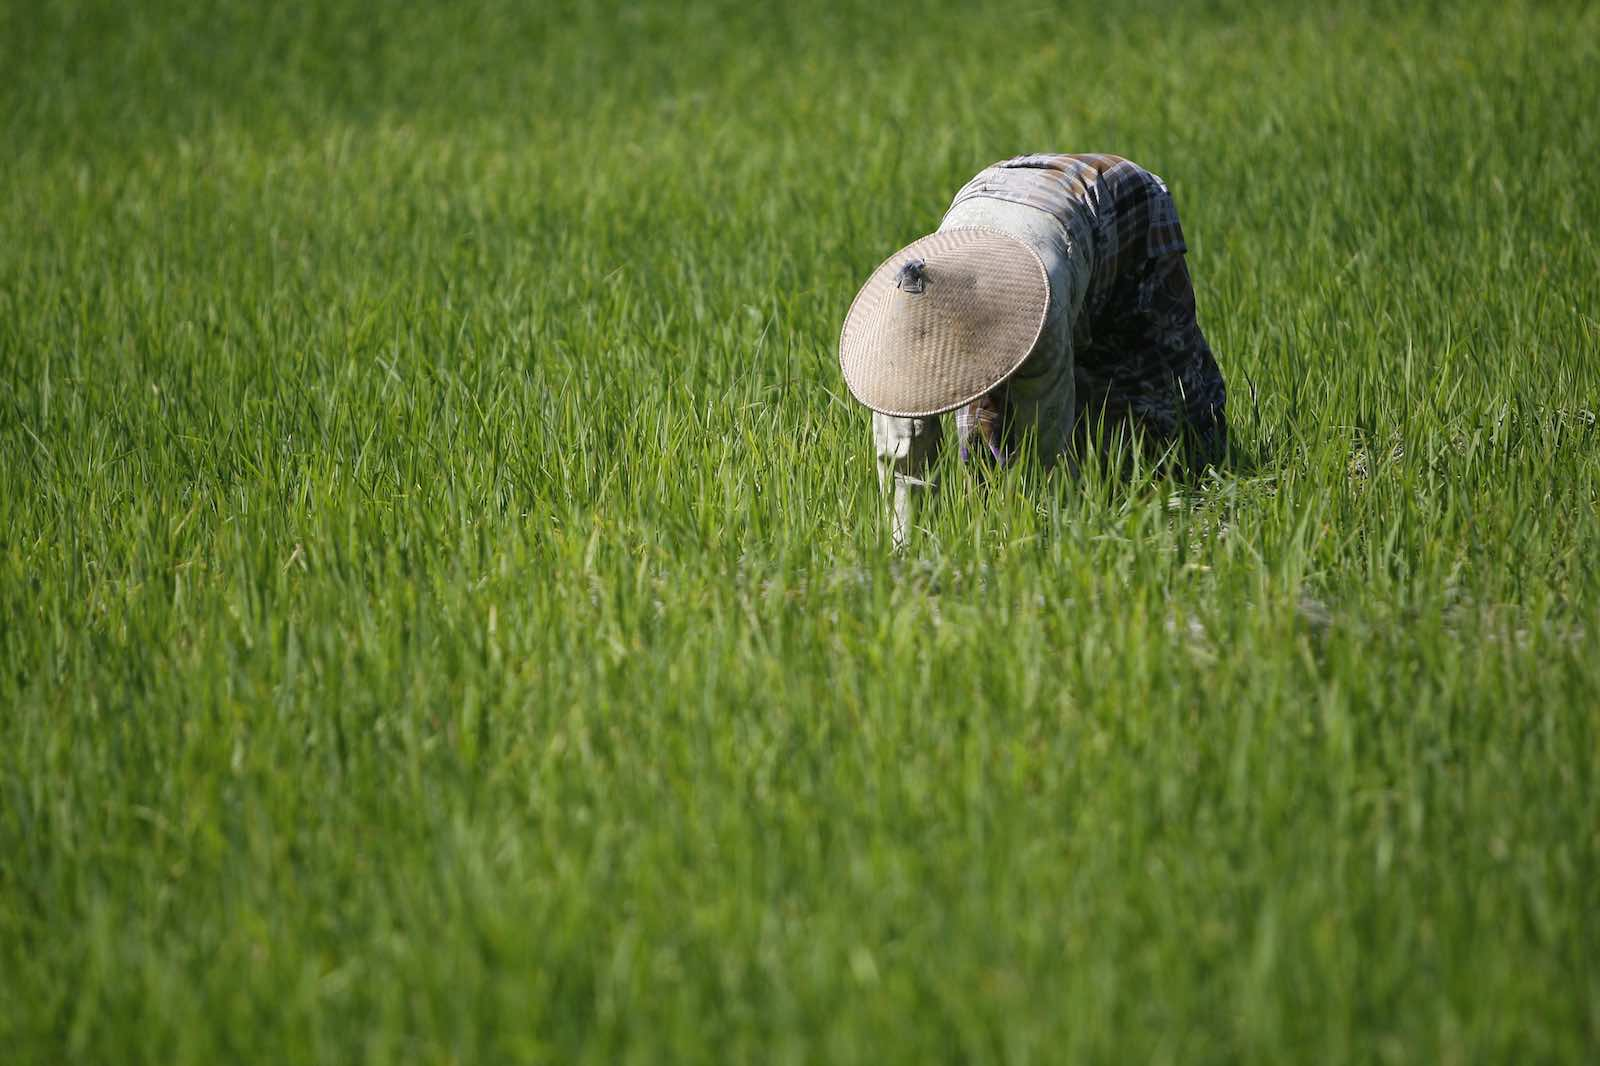 A woman harvests rice in Oecussi, Timor-Leste (Photo: United Nations Photo/Flickr)